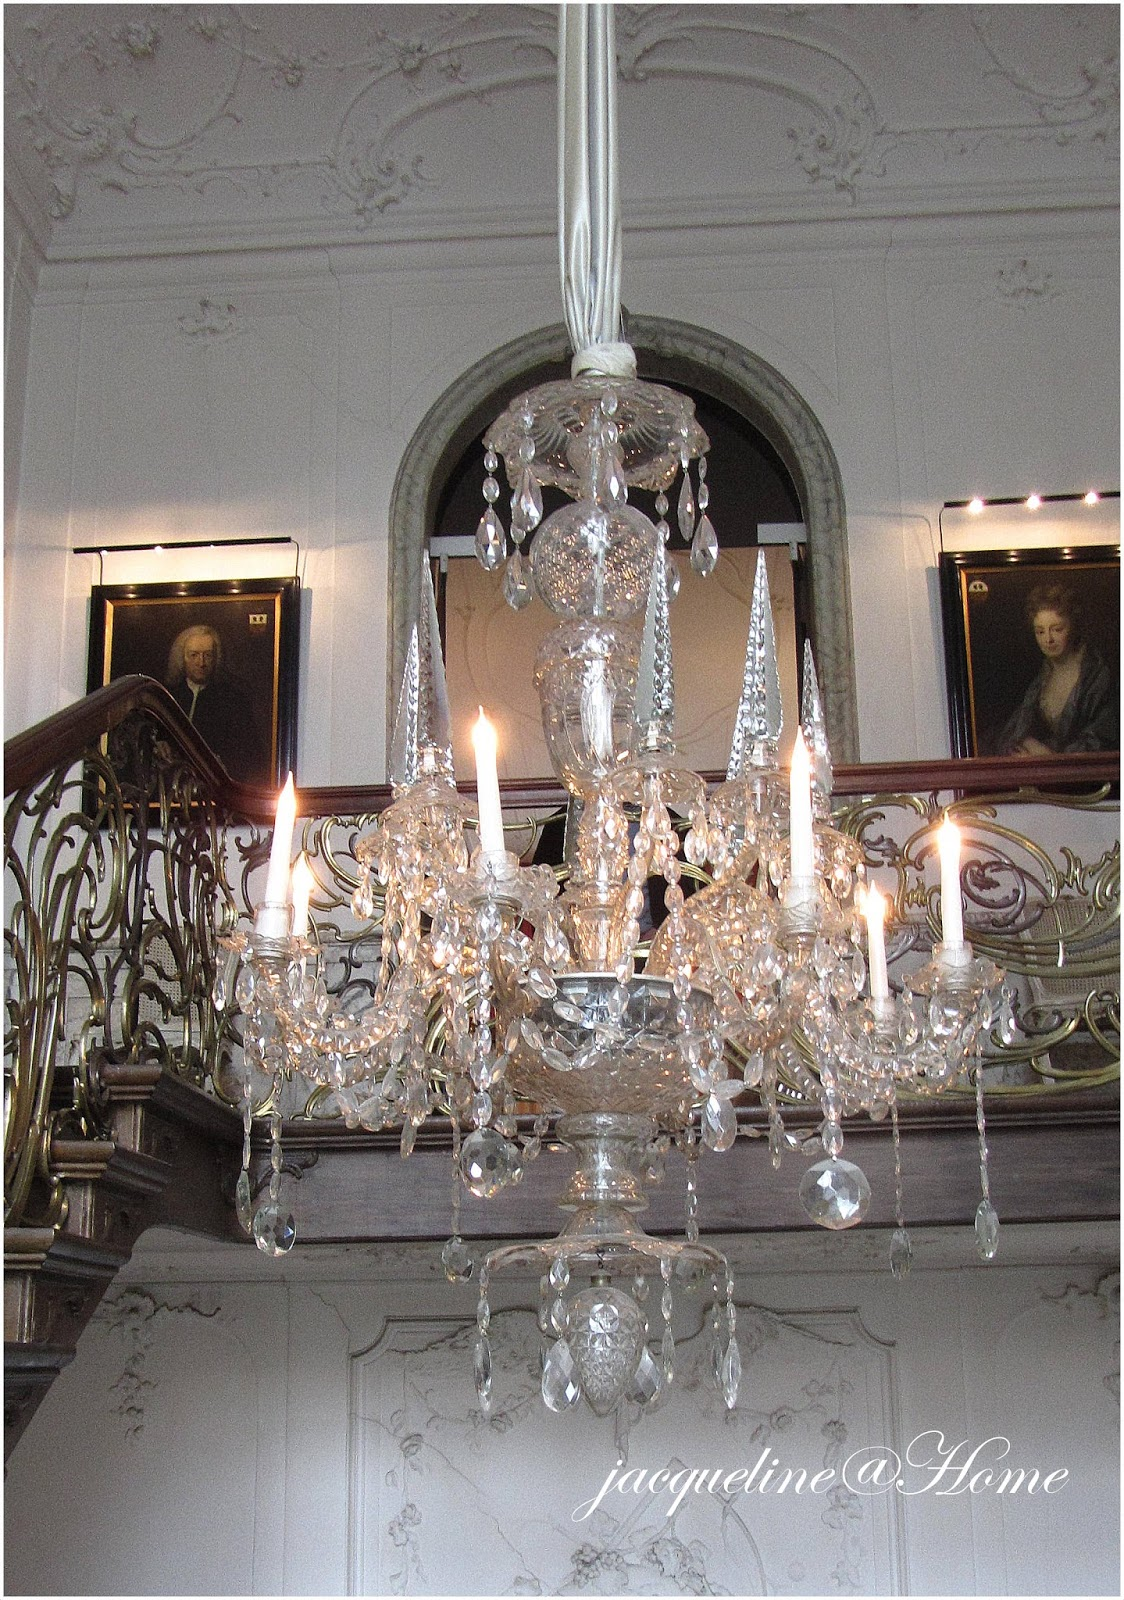 Home im gonna swing from the chandelier chandelier in a house in amsterdam arubaitofo Image collections